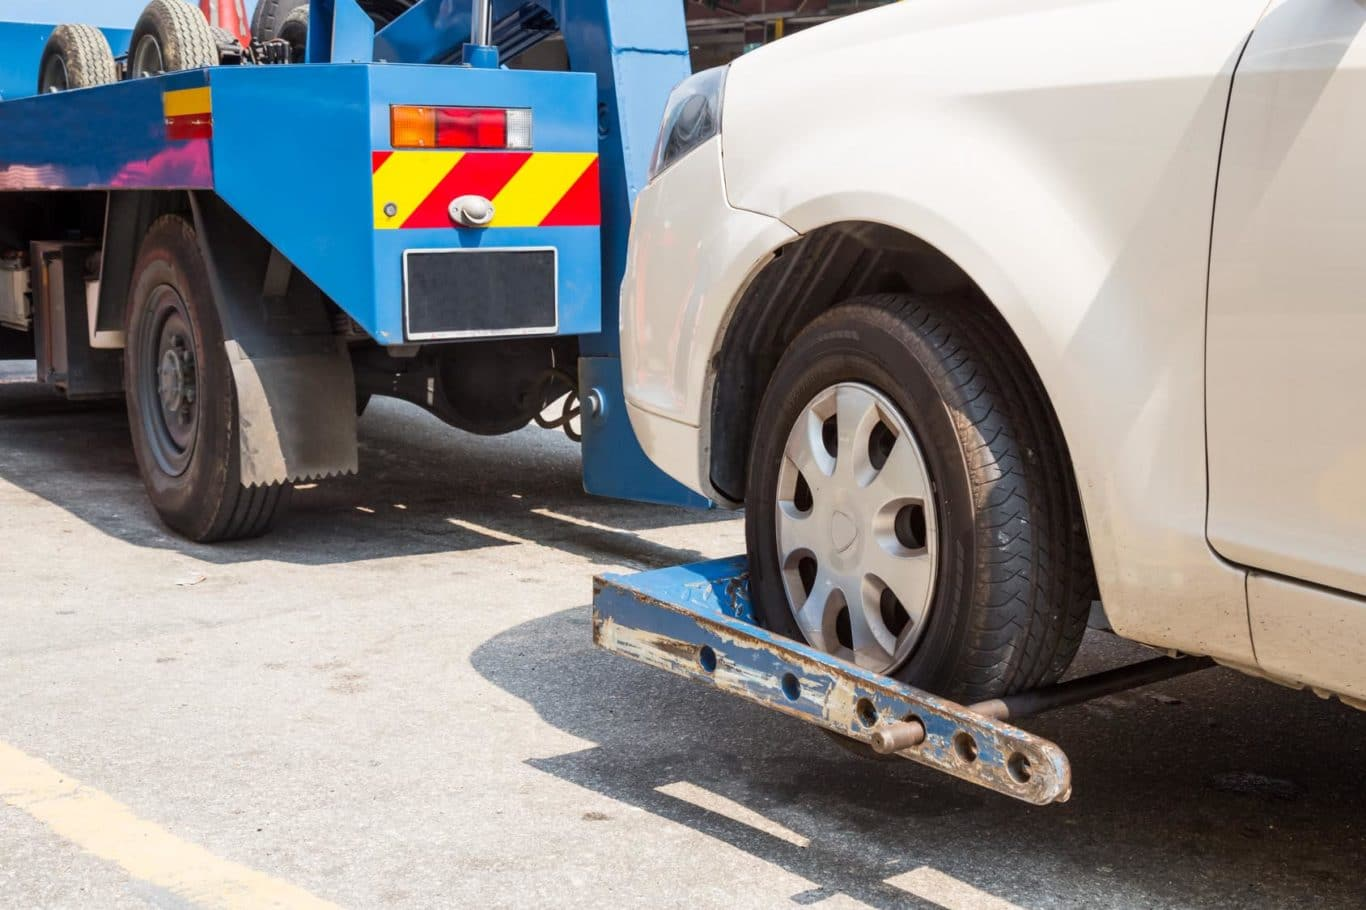 Dublin 20 (D20) Dublin, South Dublin expert Car Recovery services